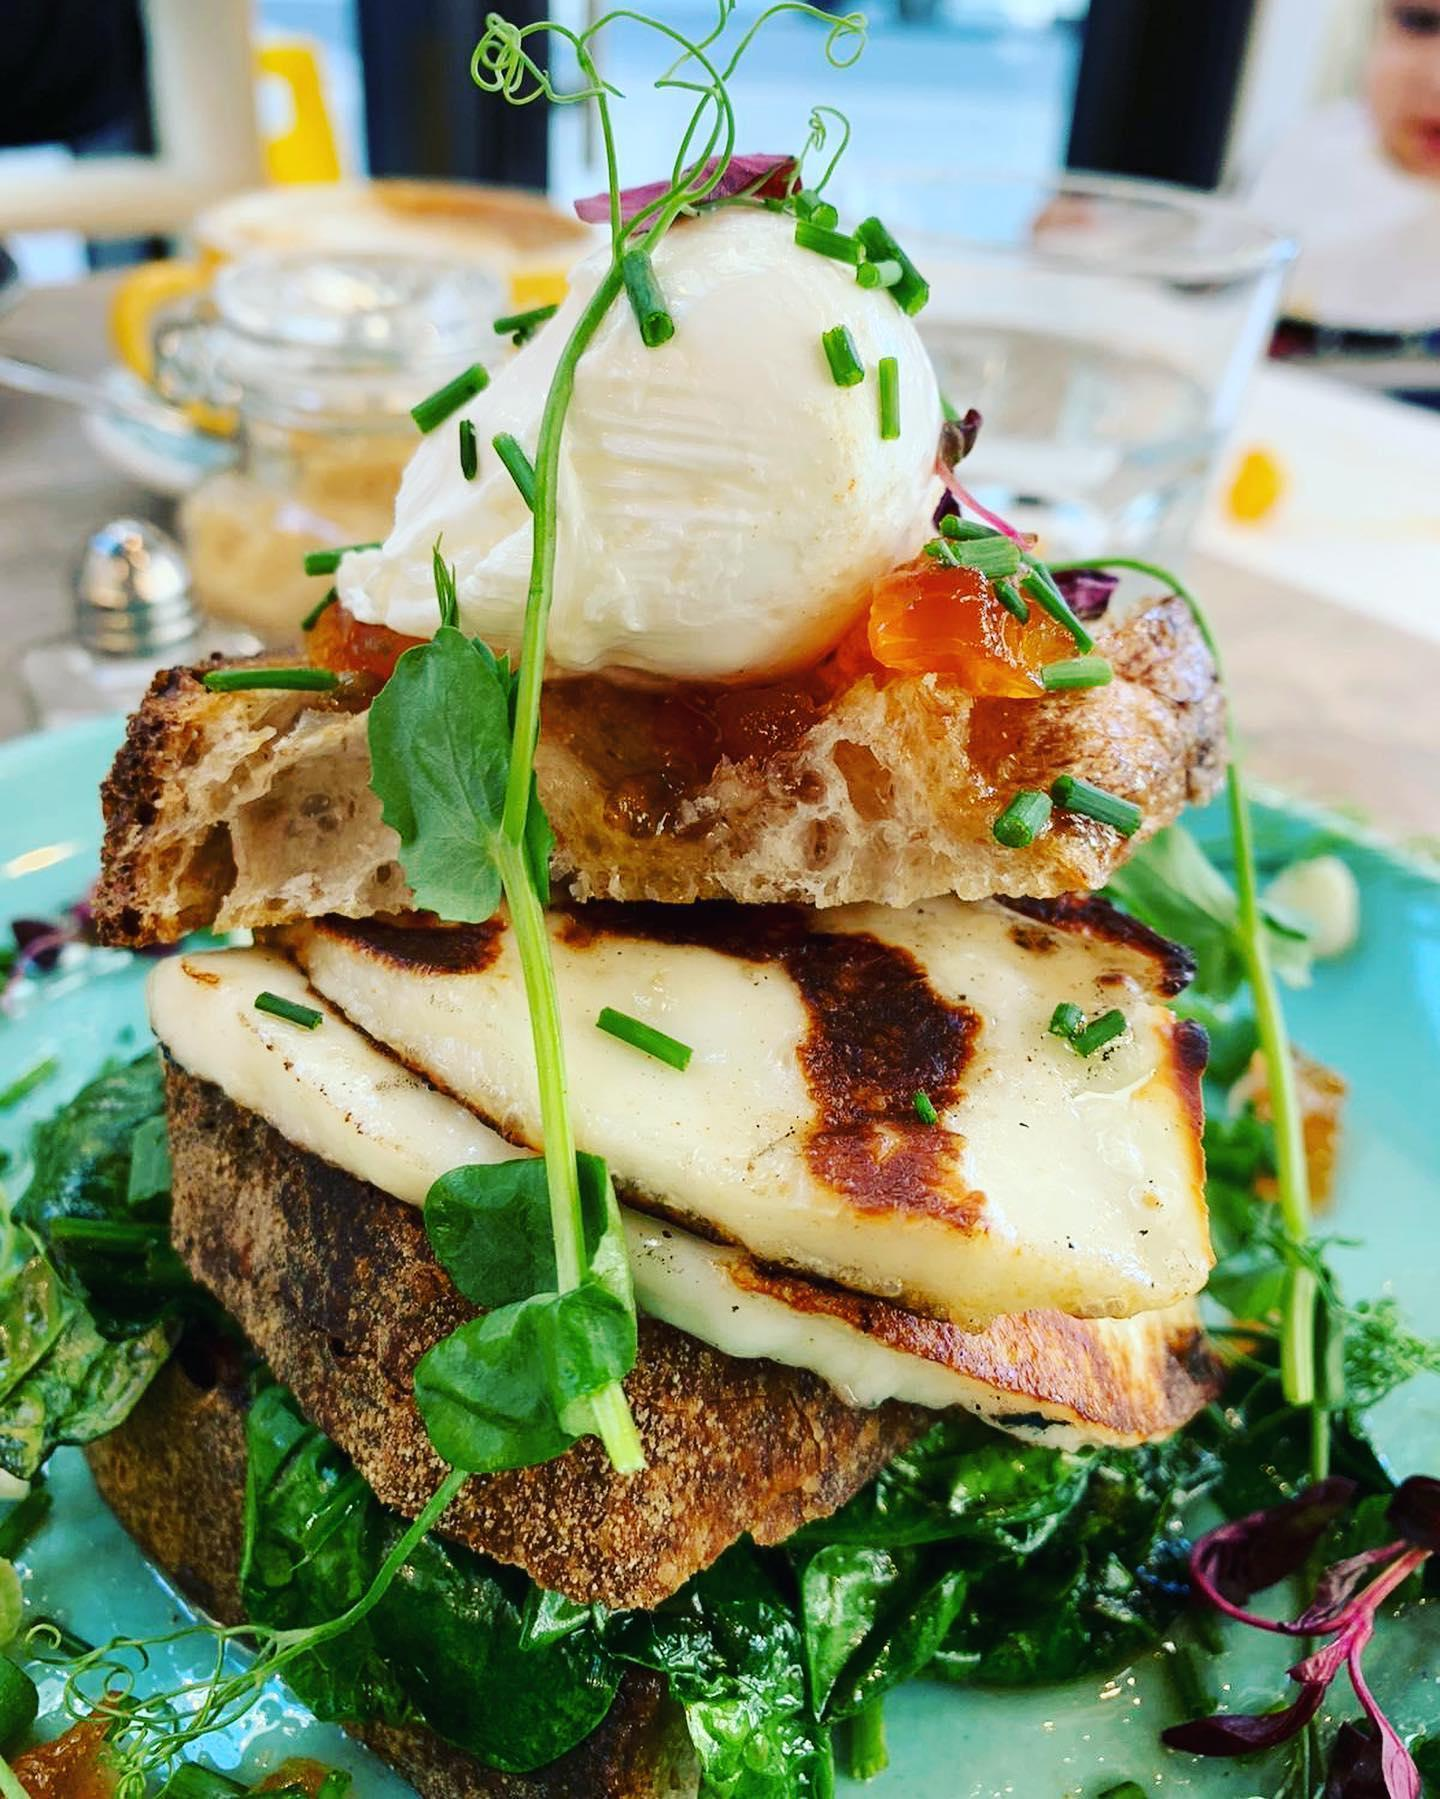 Delicious looking all in one brunch sandwich